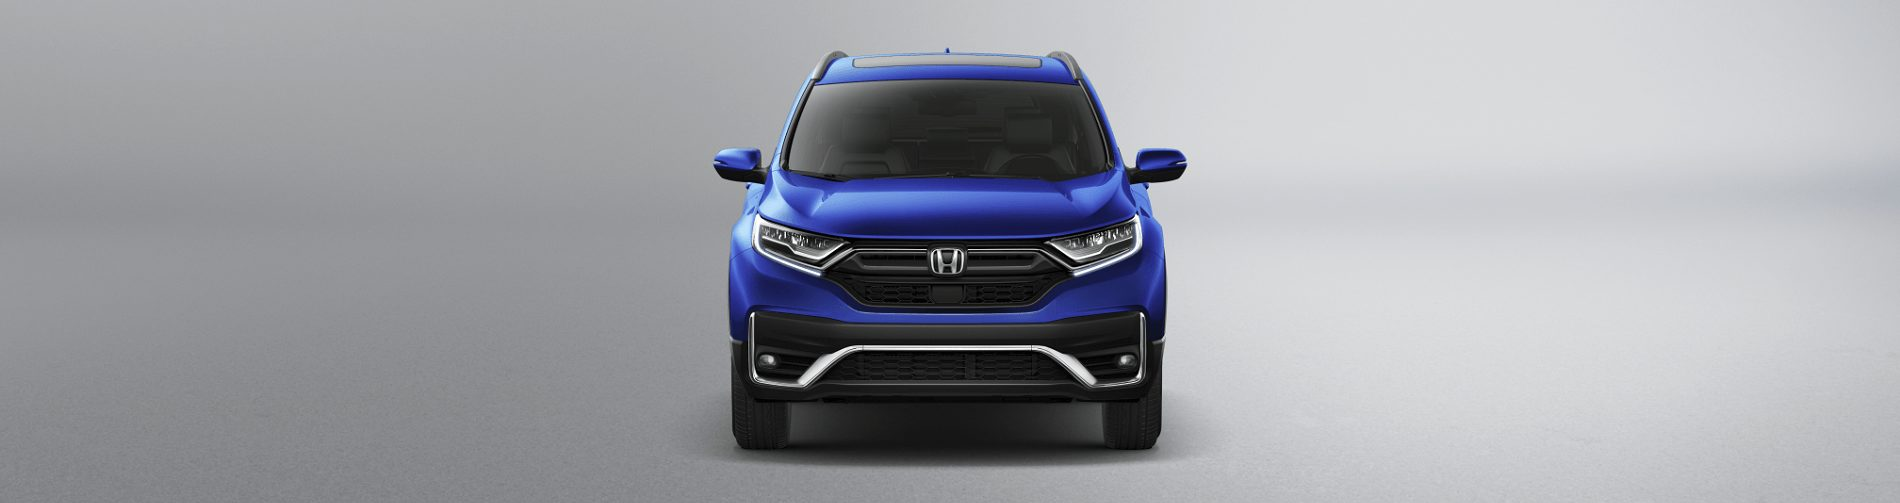 2020 Honda CR-V blue